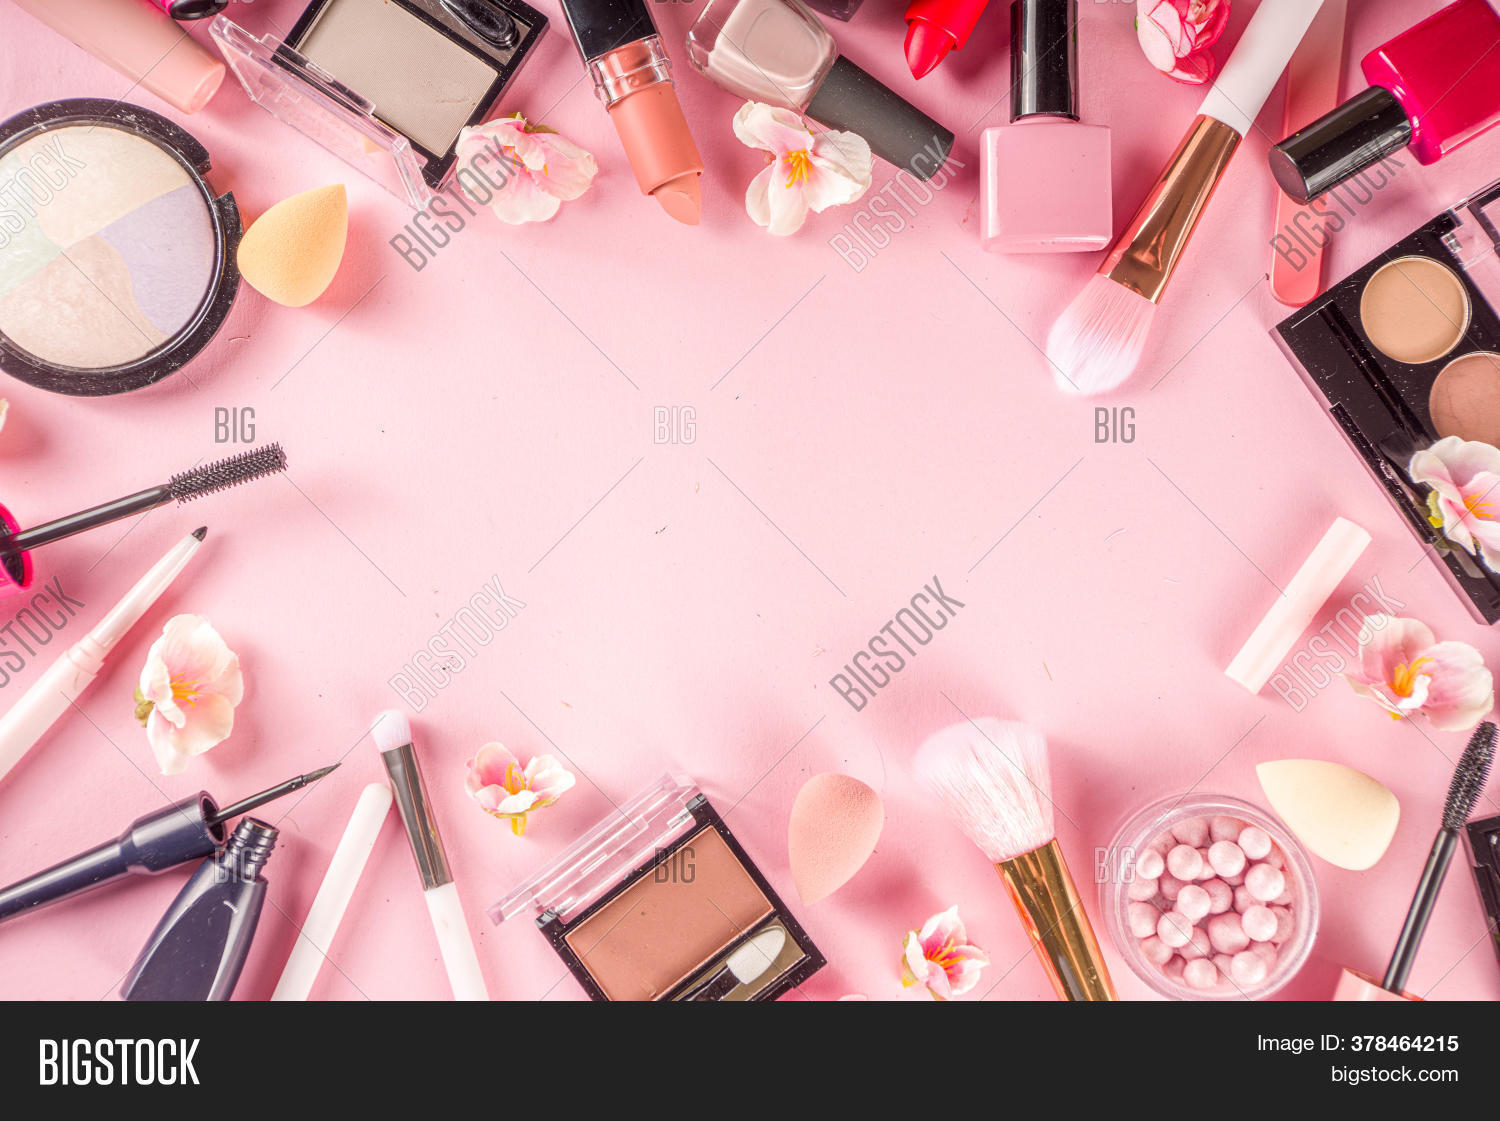 Makeup Products Image Photo Free